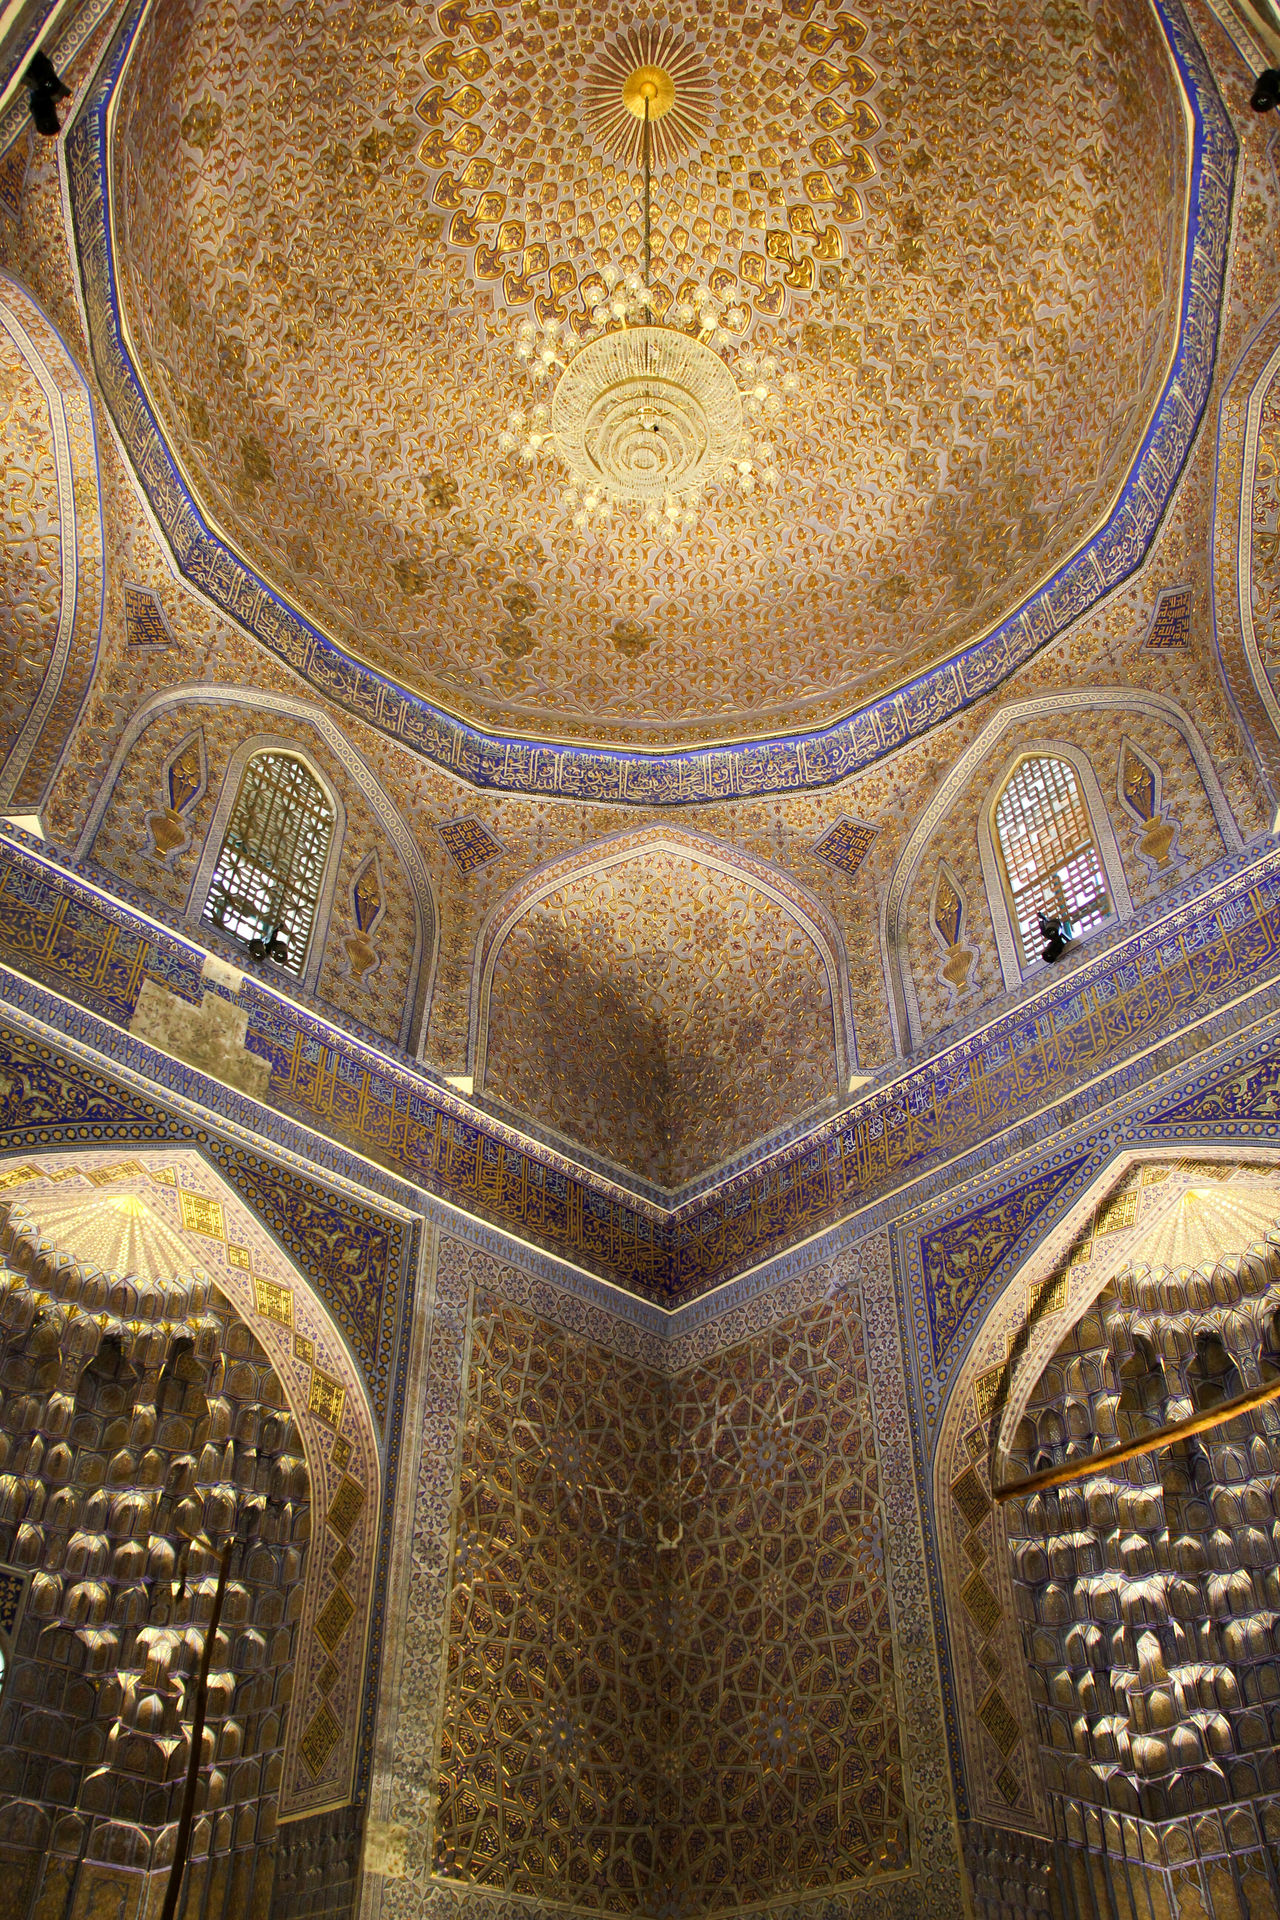 Architecture Built Structure Ceiling Cupola Day Dome Fresco Gold Colored History Illuminated Indoors  Islamic Architecture Islamic Art Looking Up Low Angle View Mausoleum No People Pattern Religion Samarkand Samarqand Silk Road Travel Destinations Uzbekistan